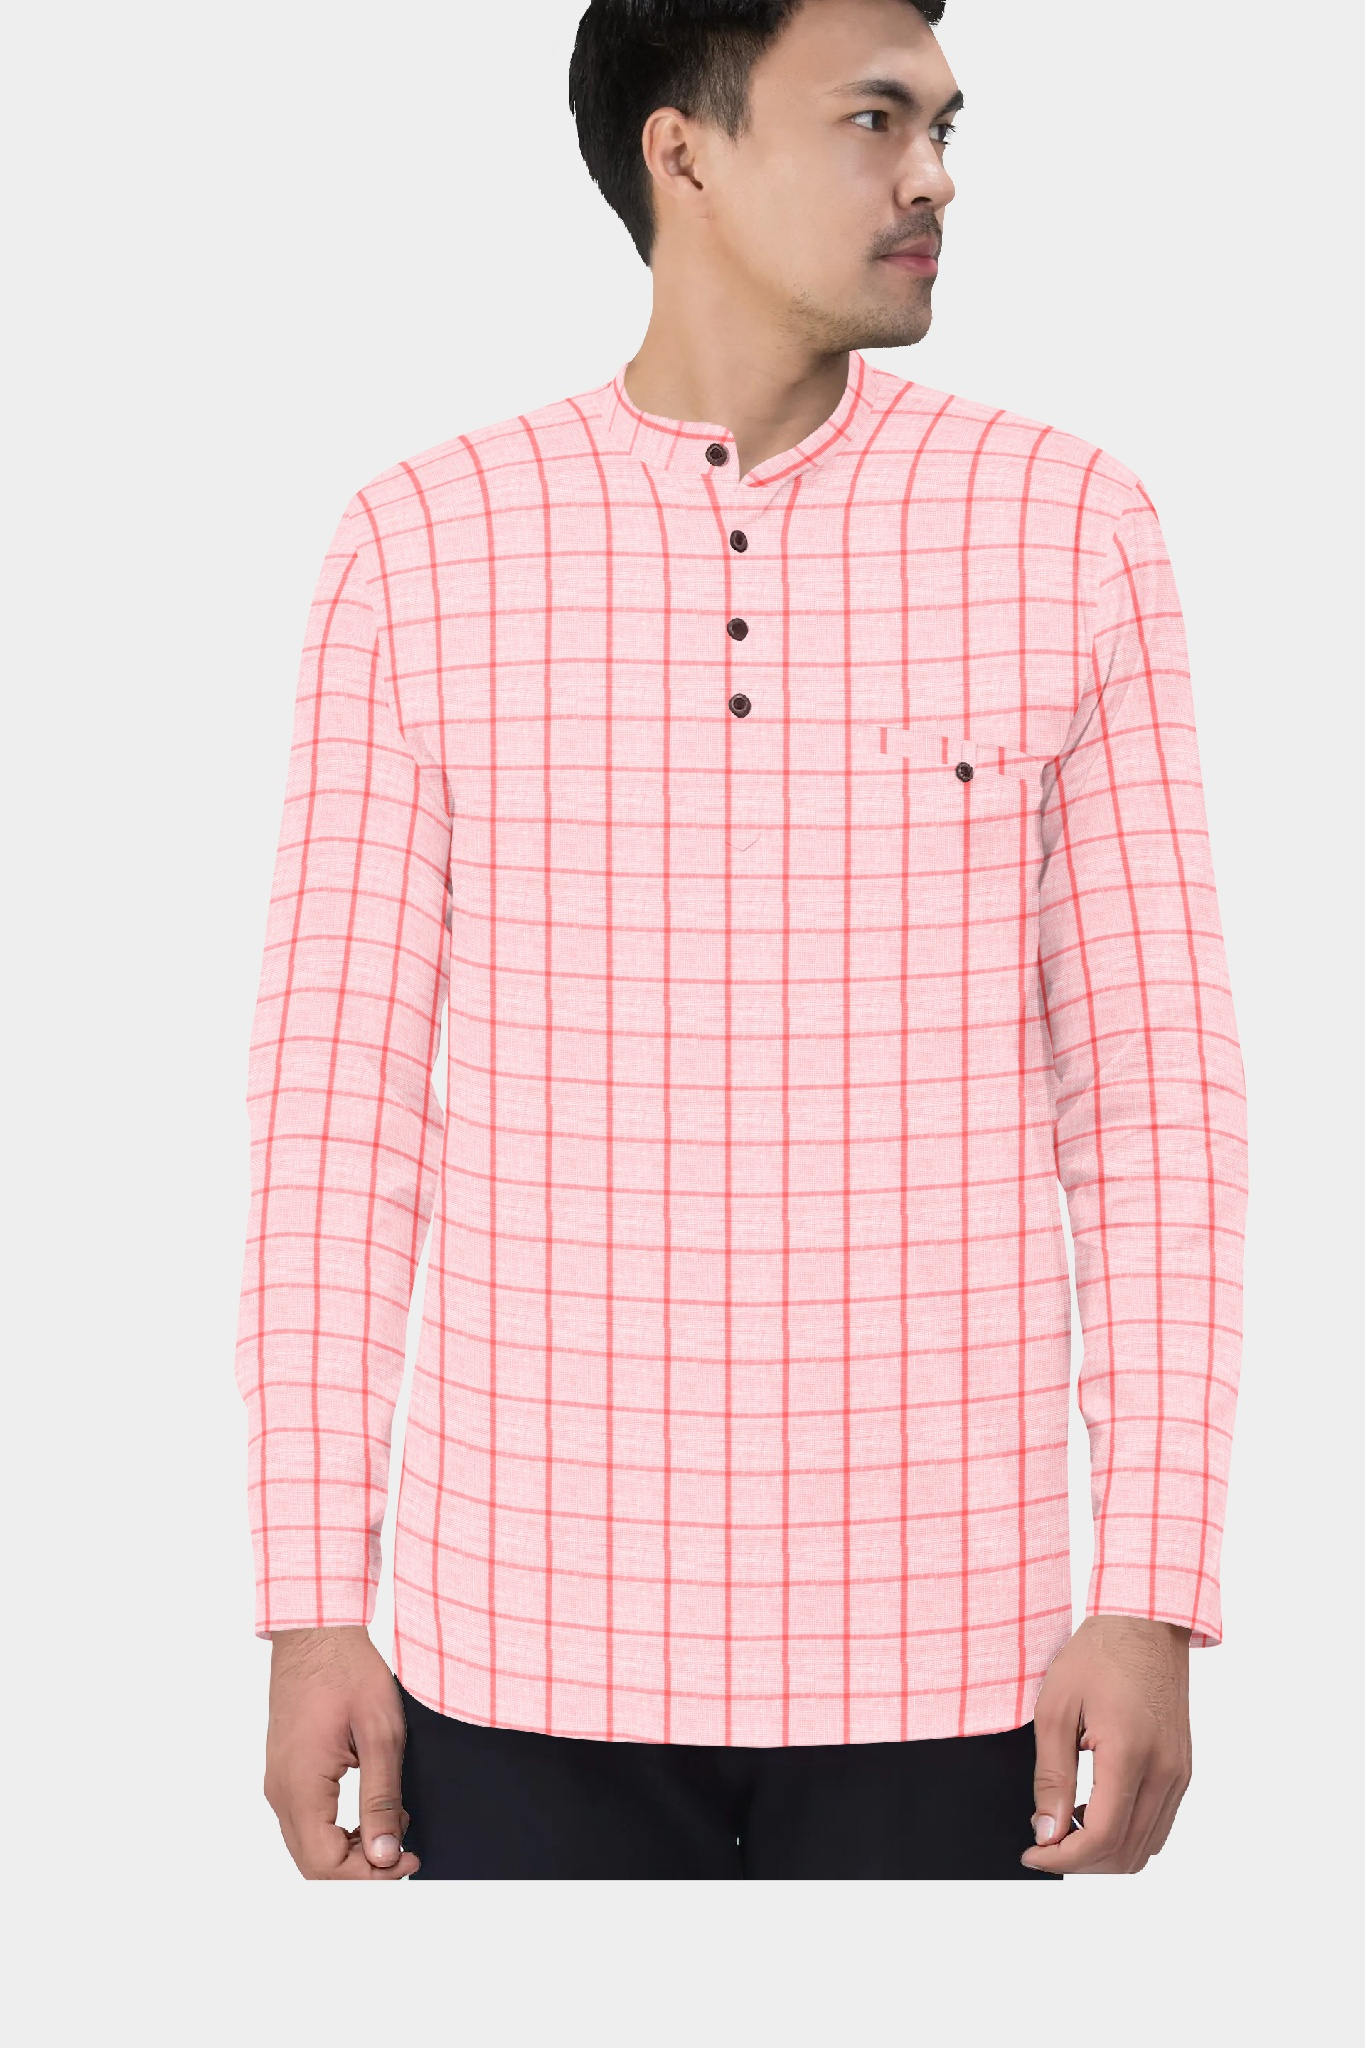 /home/customer/www/fabartcraft.com/public_html/uploadshttps://www.shopolics.com/uploads/images/medium/White-Pink-Cotton-Short-Kurta-35426.jpg